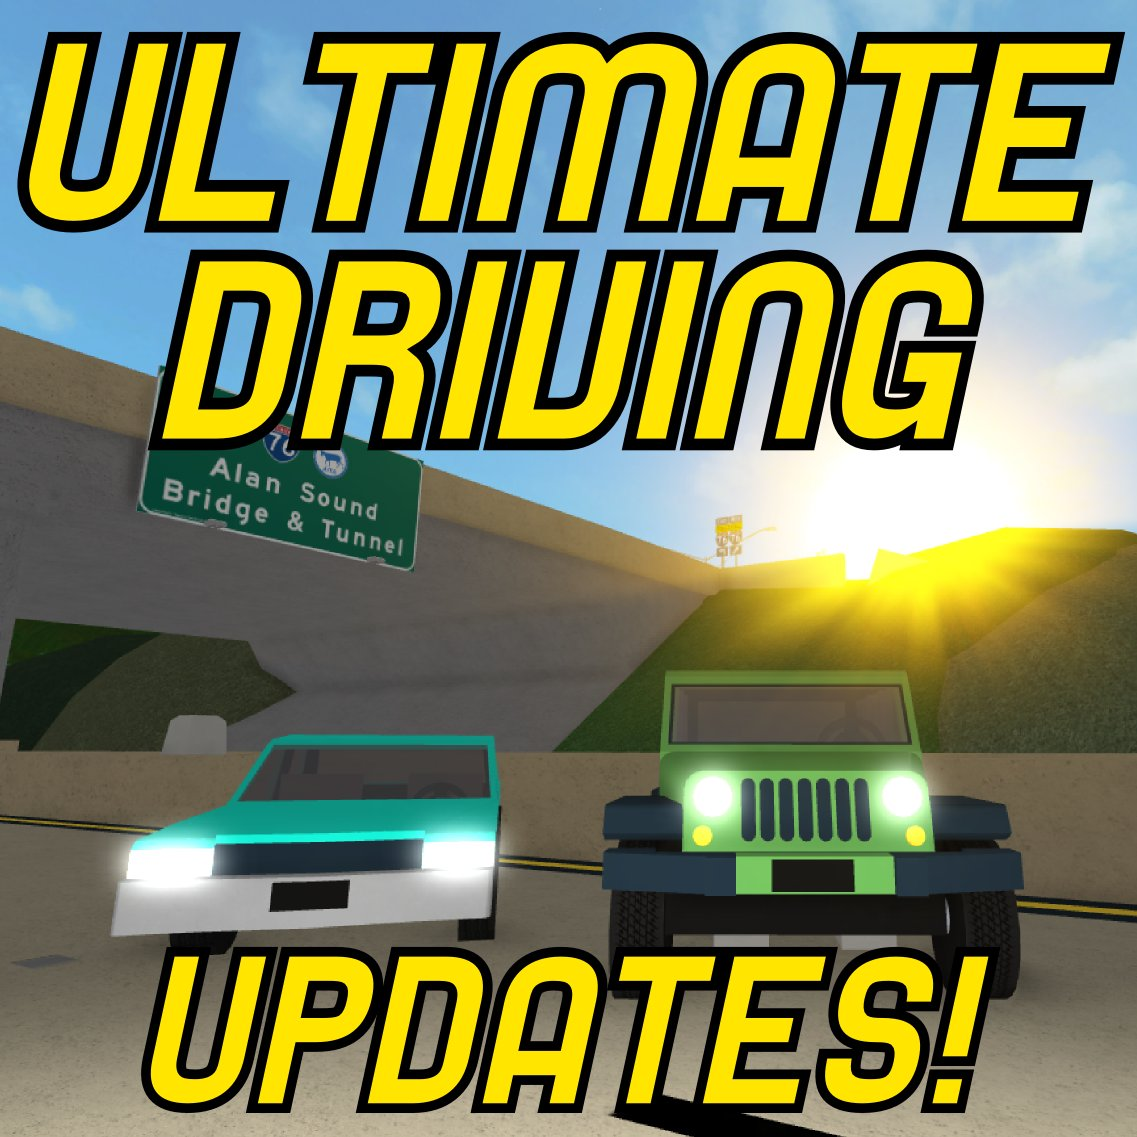 Twentytwopilots On Twitter Ud Westover Islands On Roblox Has - roblox vehicle simulator paint jobs